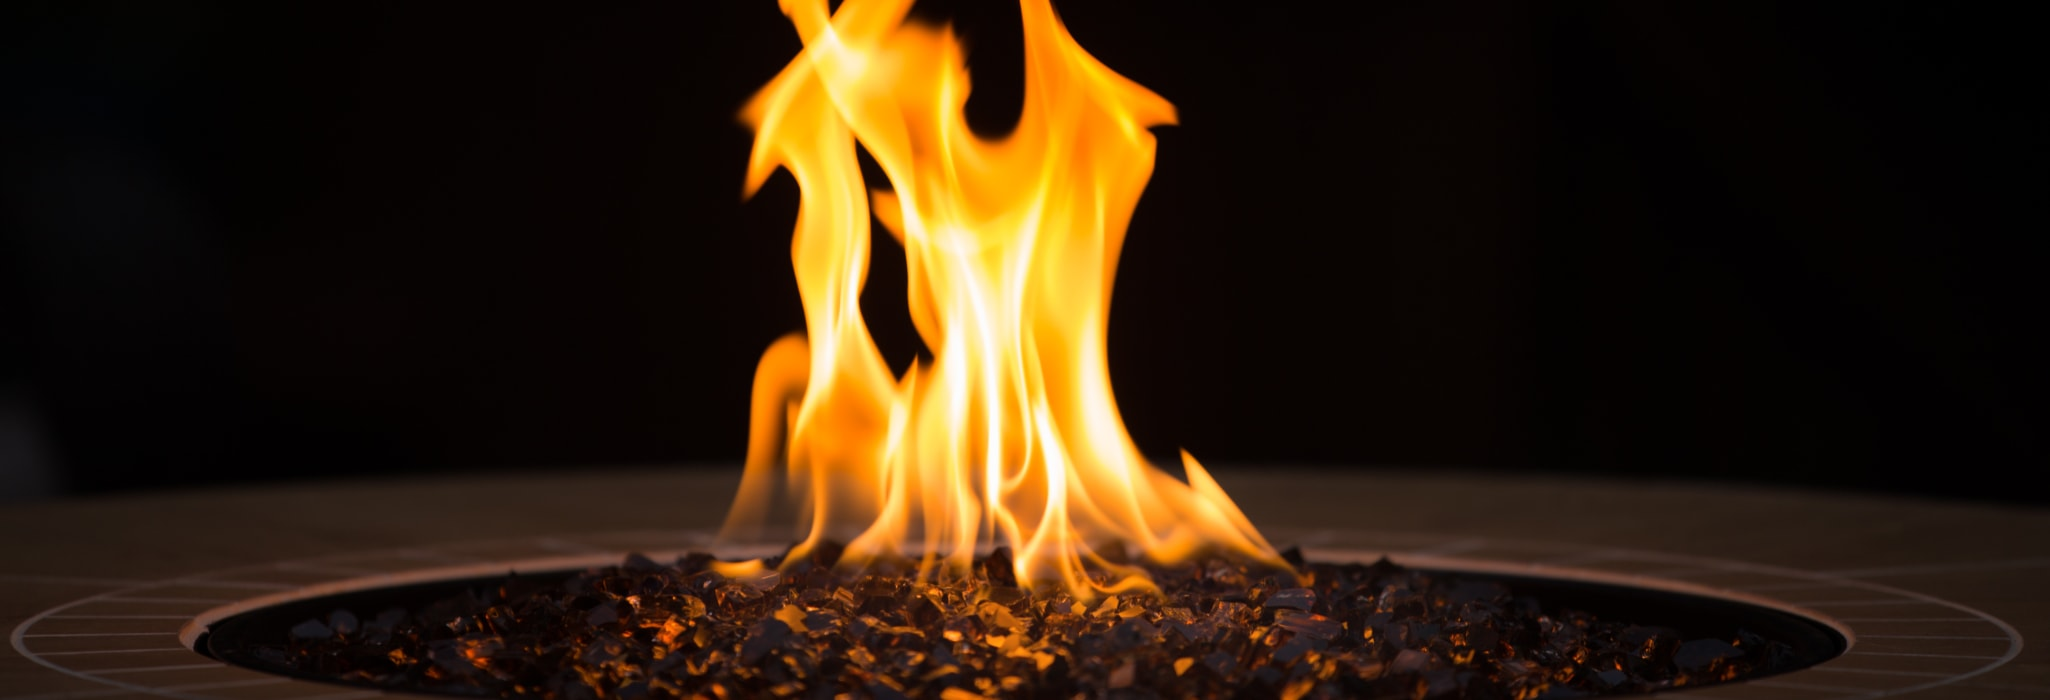 Close up of an outdoor fireplace with a big yellow flame and black background.